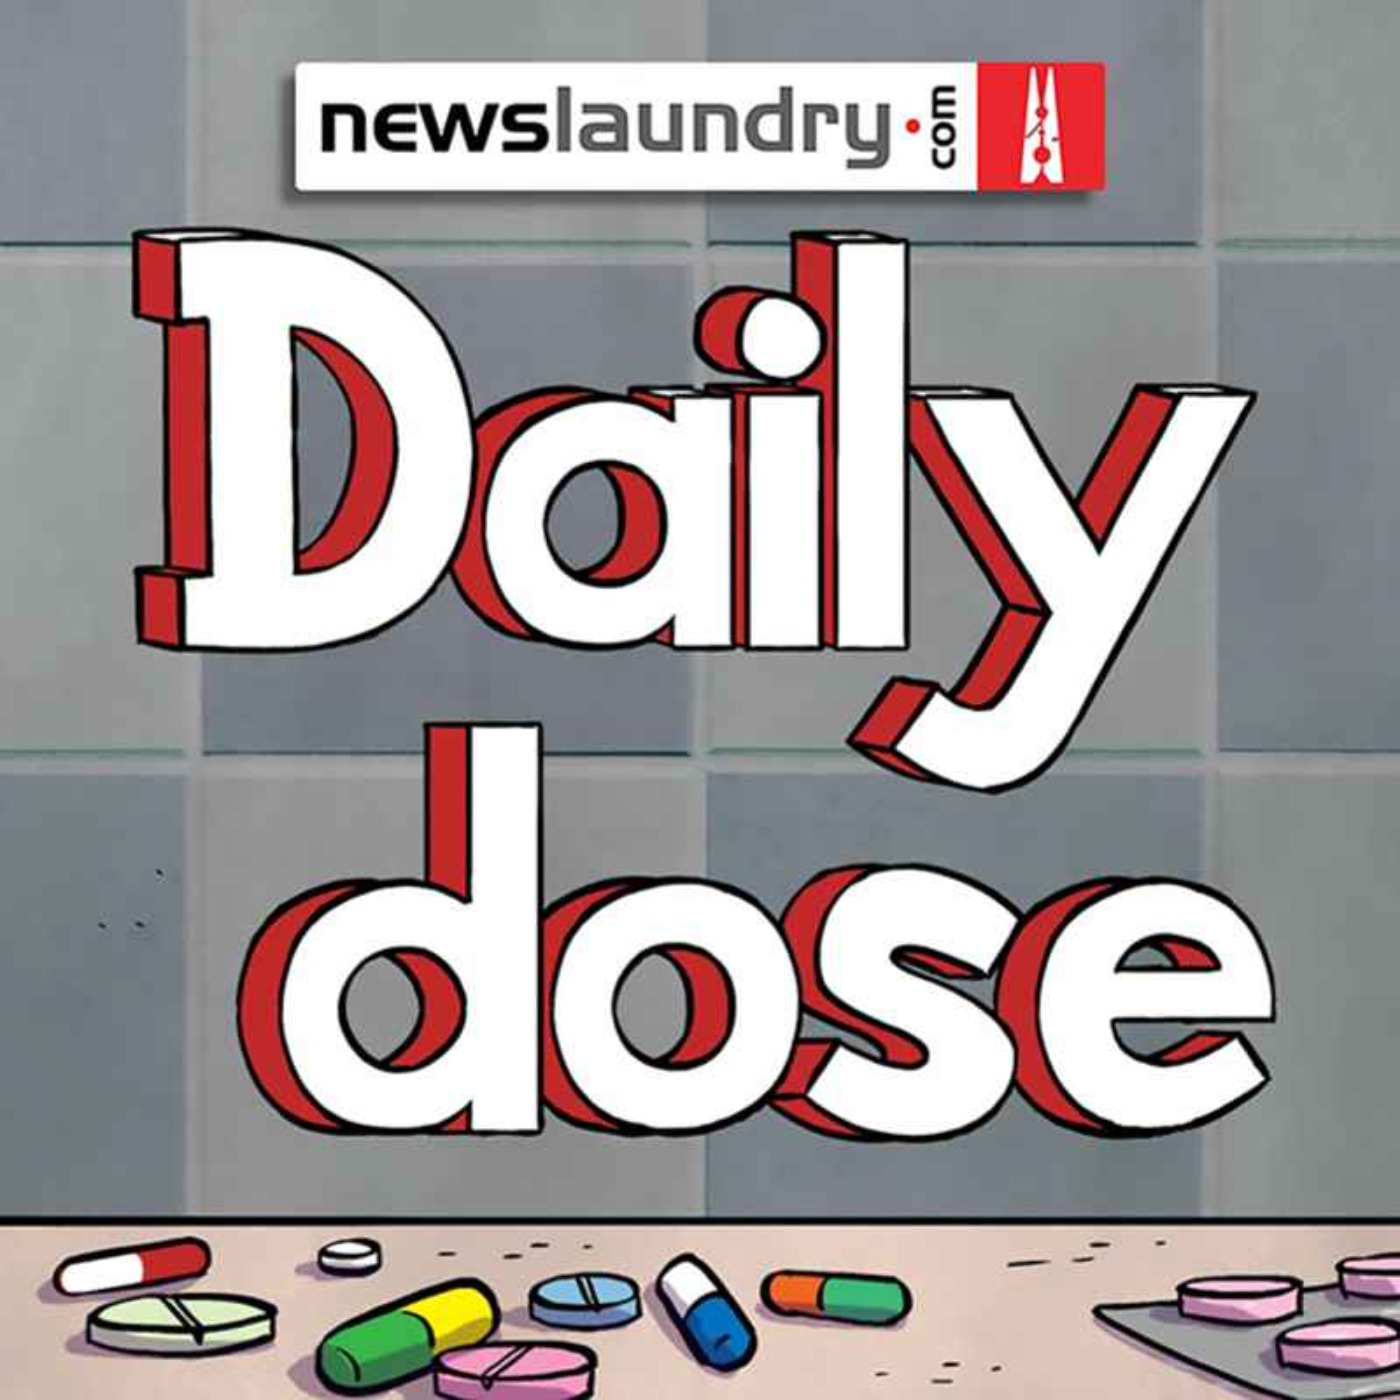 Daily Dose Ep 558: Farmer protests, Cyclone Nivar, and Covid vaccine